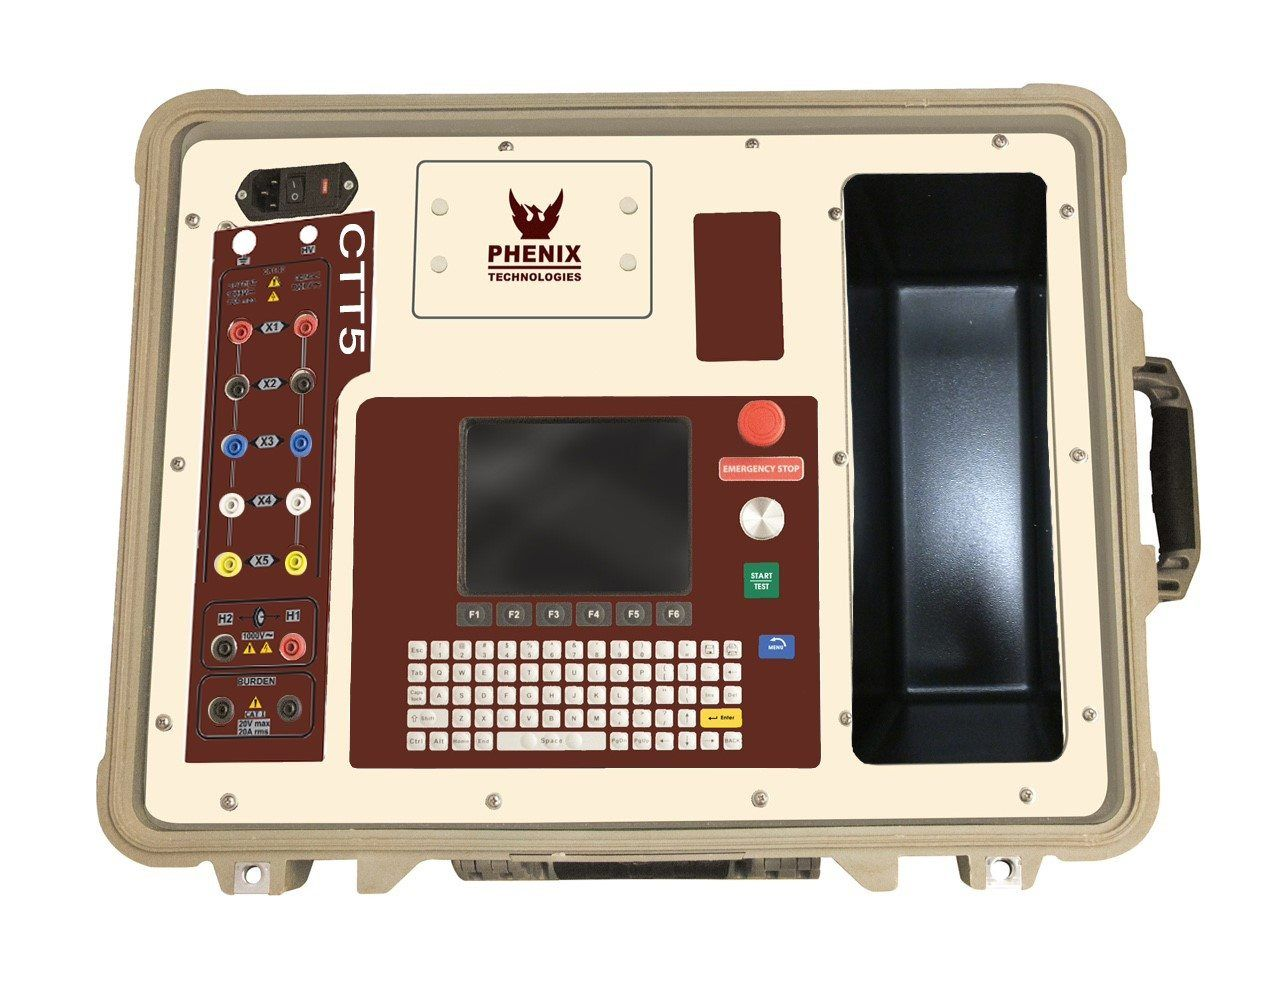 Phenix Technologies Ctt 5 Current Transformer Tester